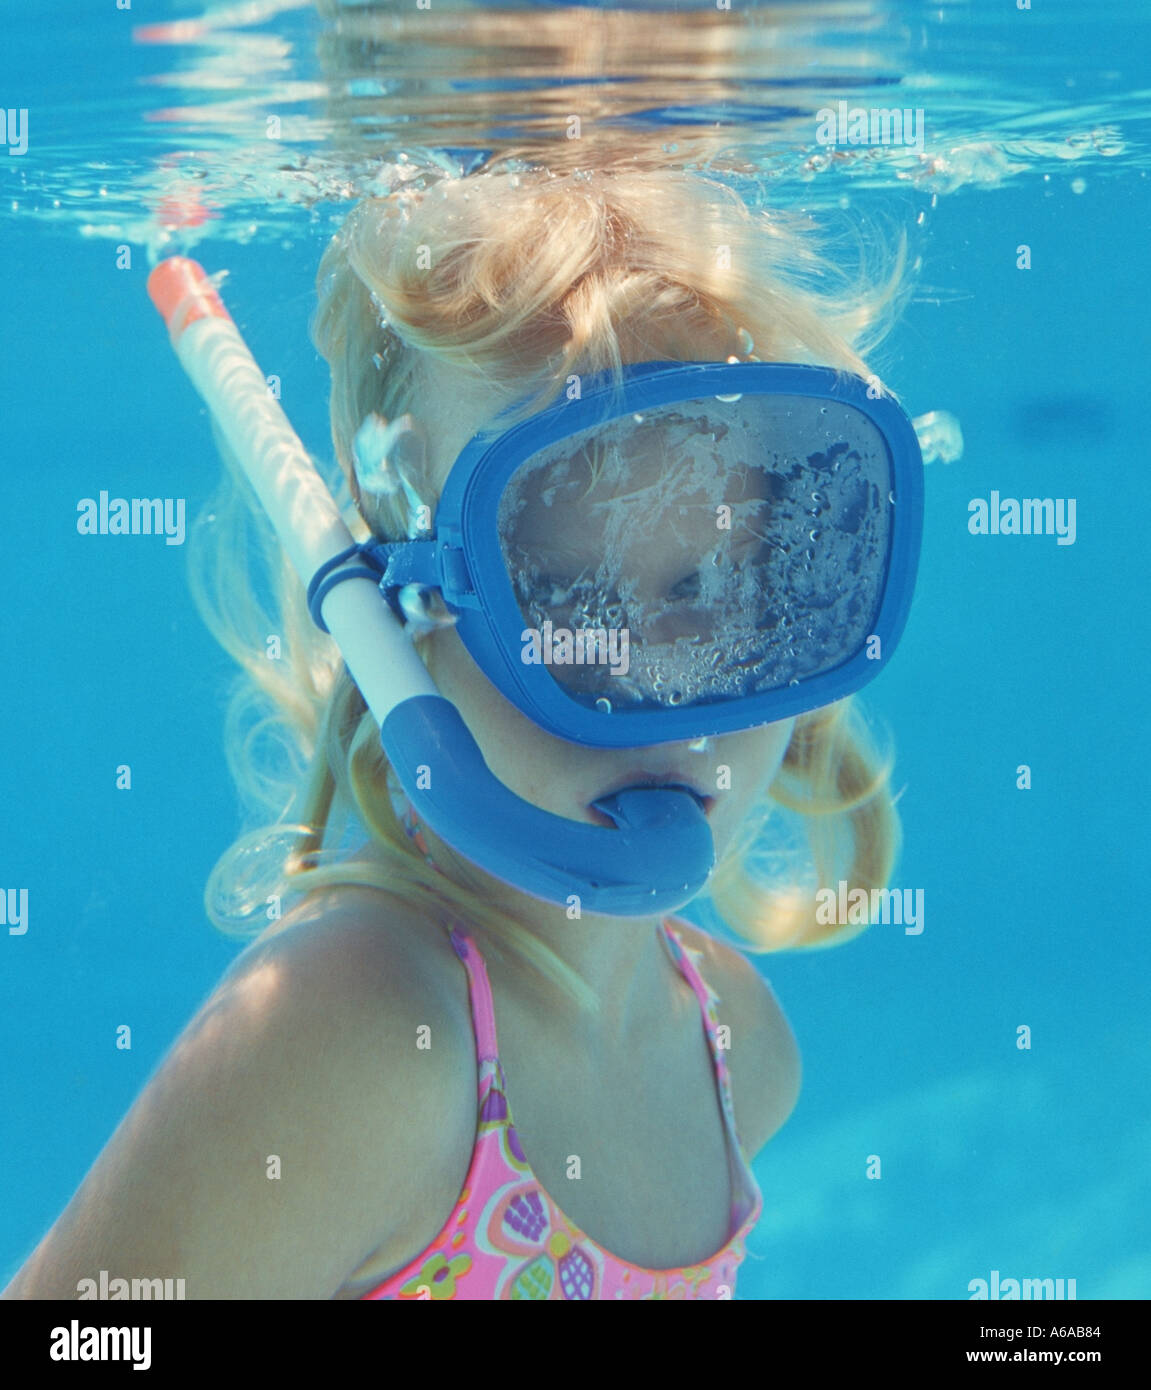 Small girl underwater with mask and snorkel - Stock Image